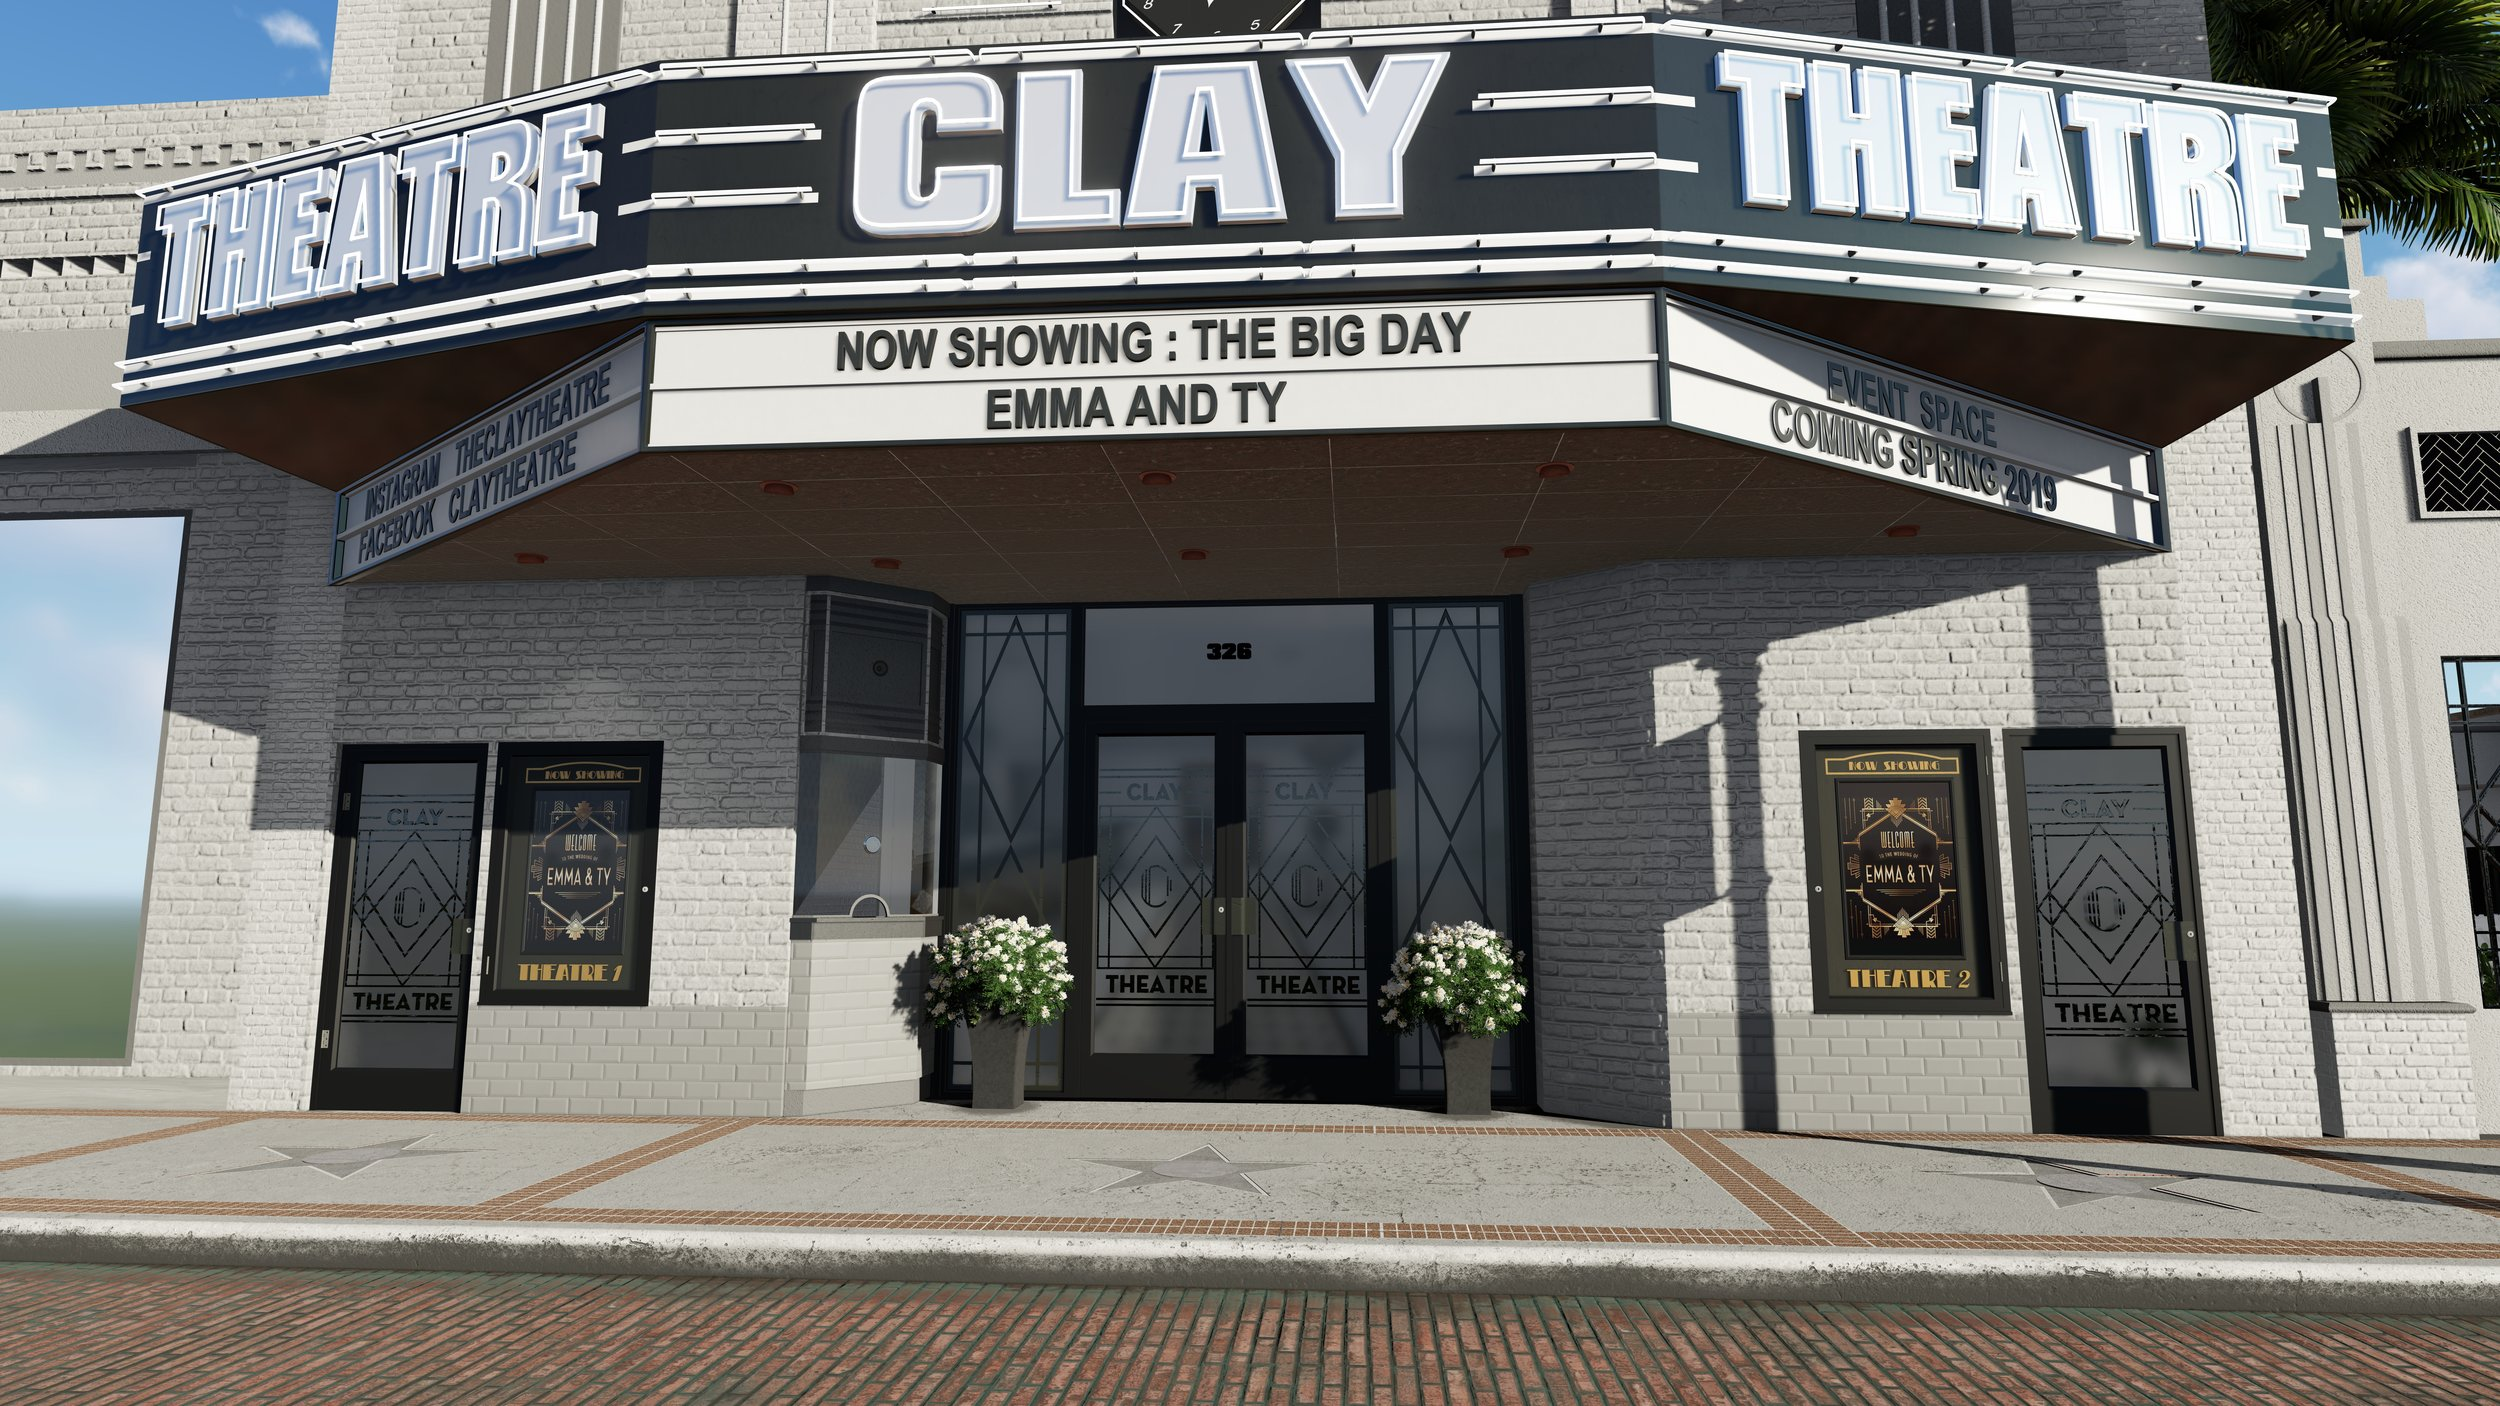 20180918_clay theatre front.jpg